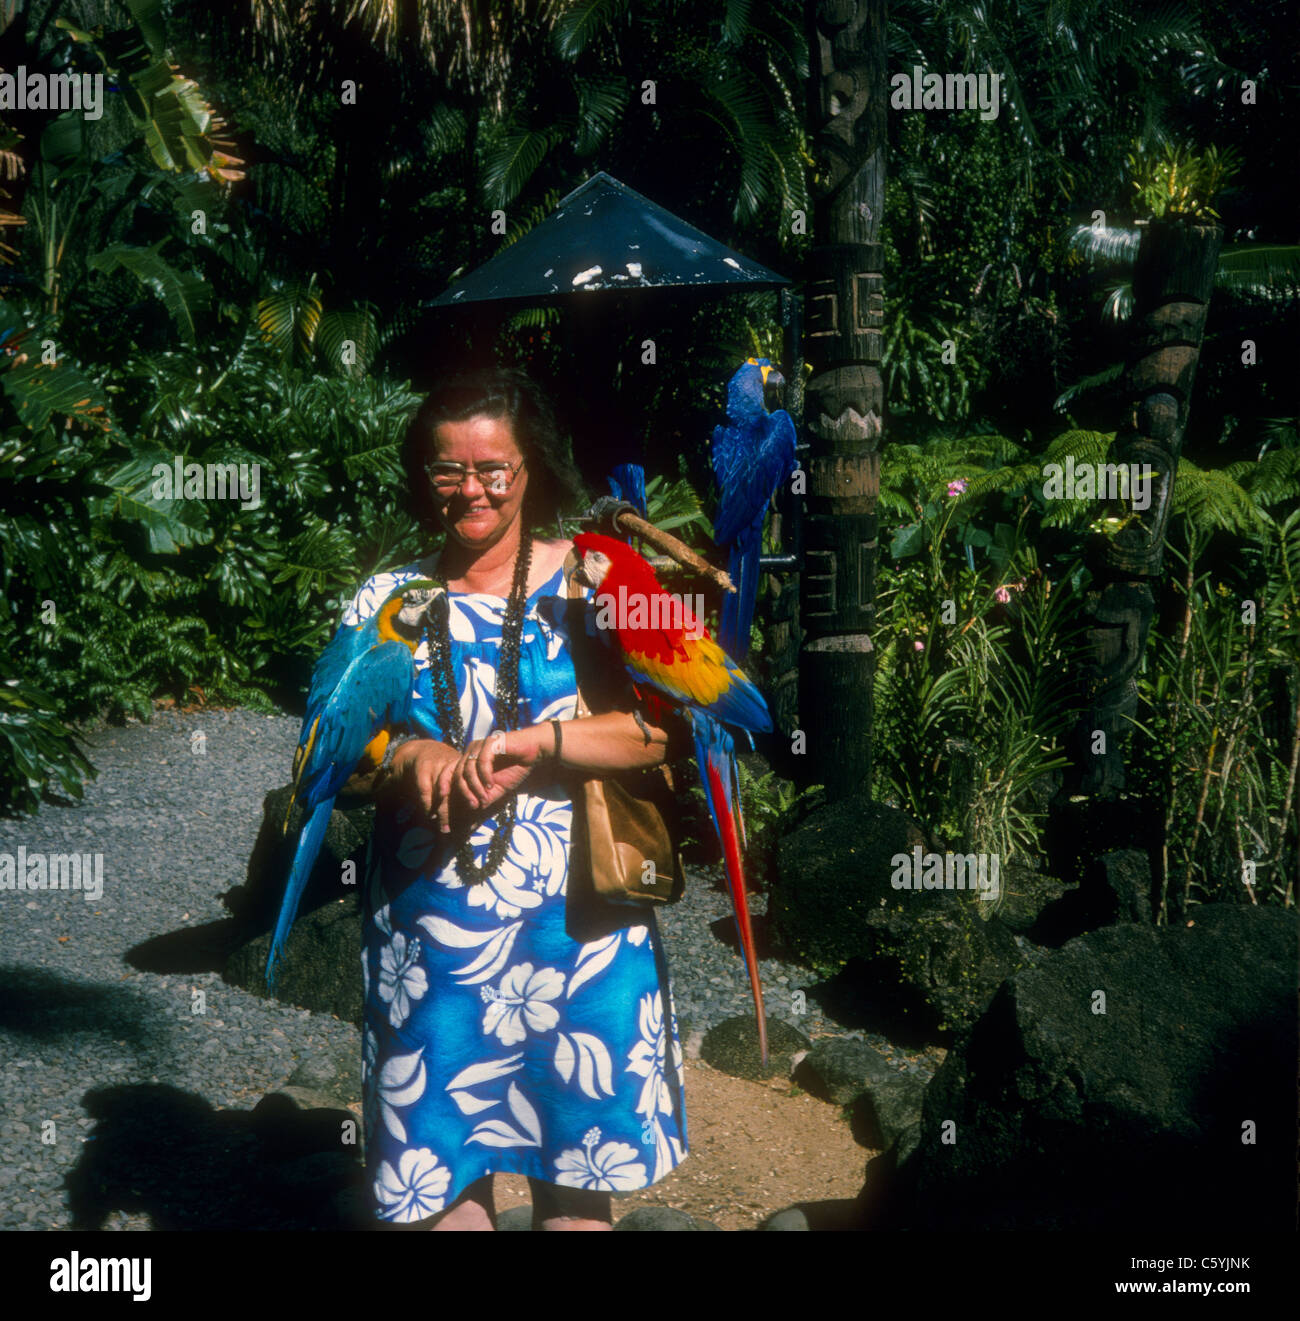 tourist with two parrots on shoulders hawaii 1974 blue flower dress fashion - Stock Image